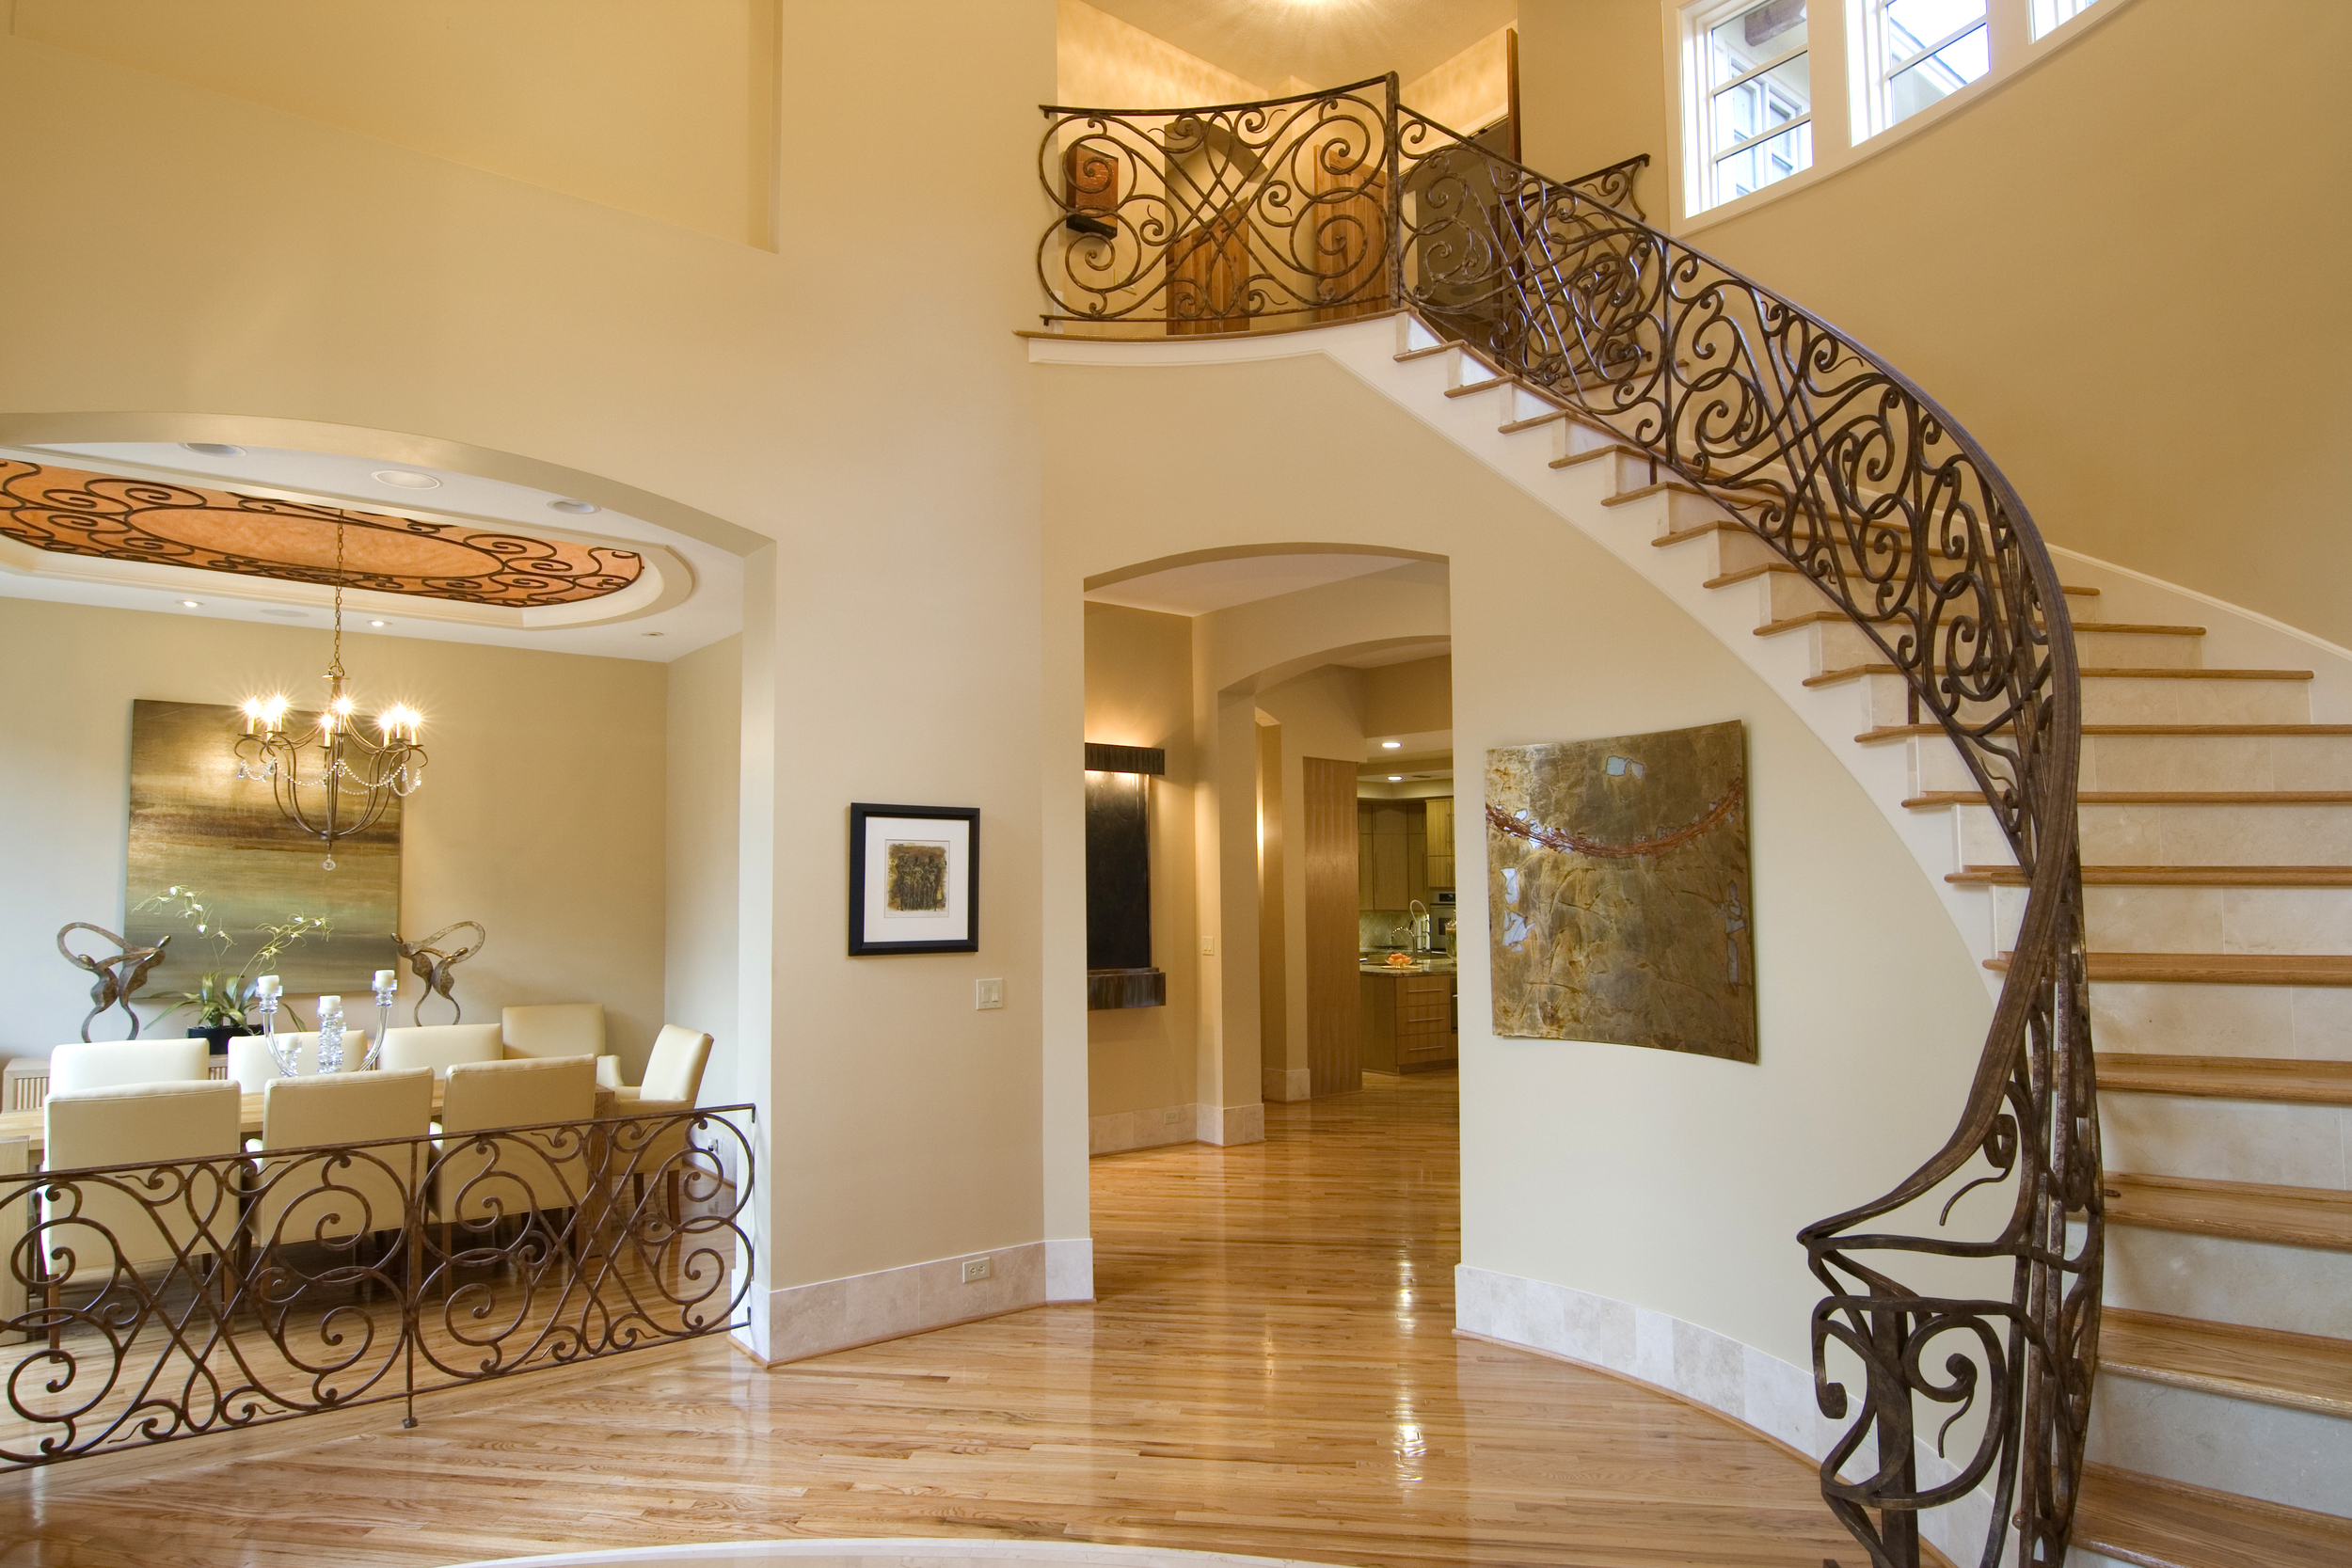 Meadow Lake  Lane - Entry looking towards Gallery, Dining Room and Staircase.jpg